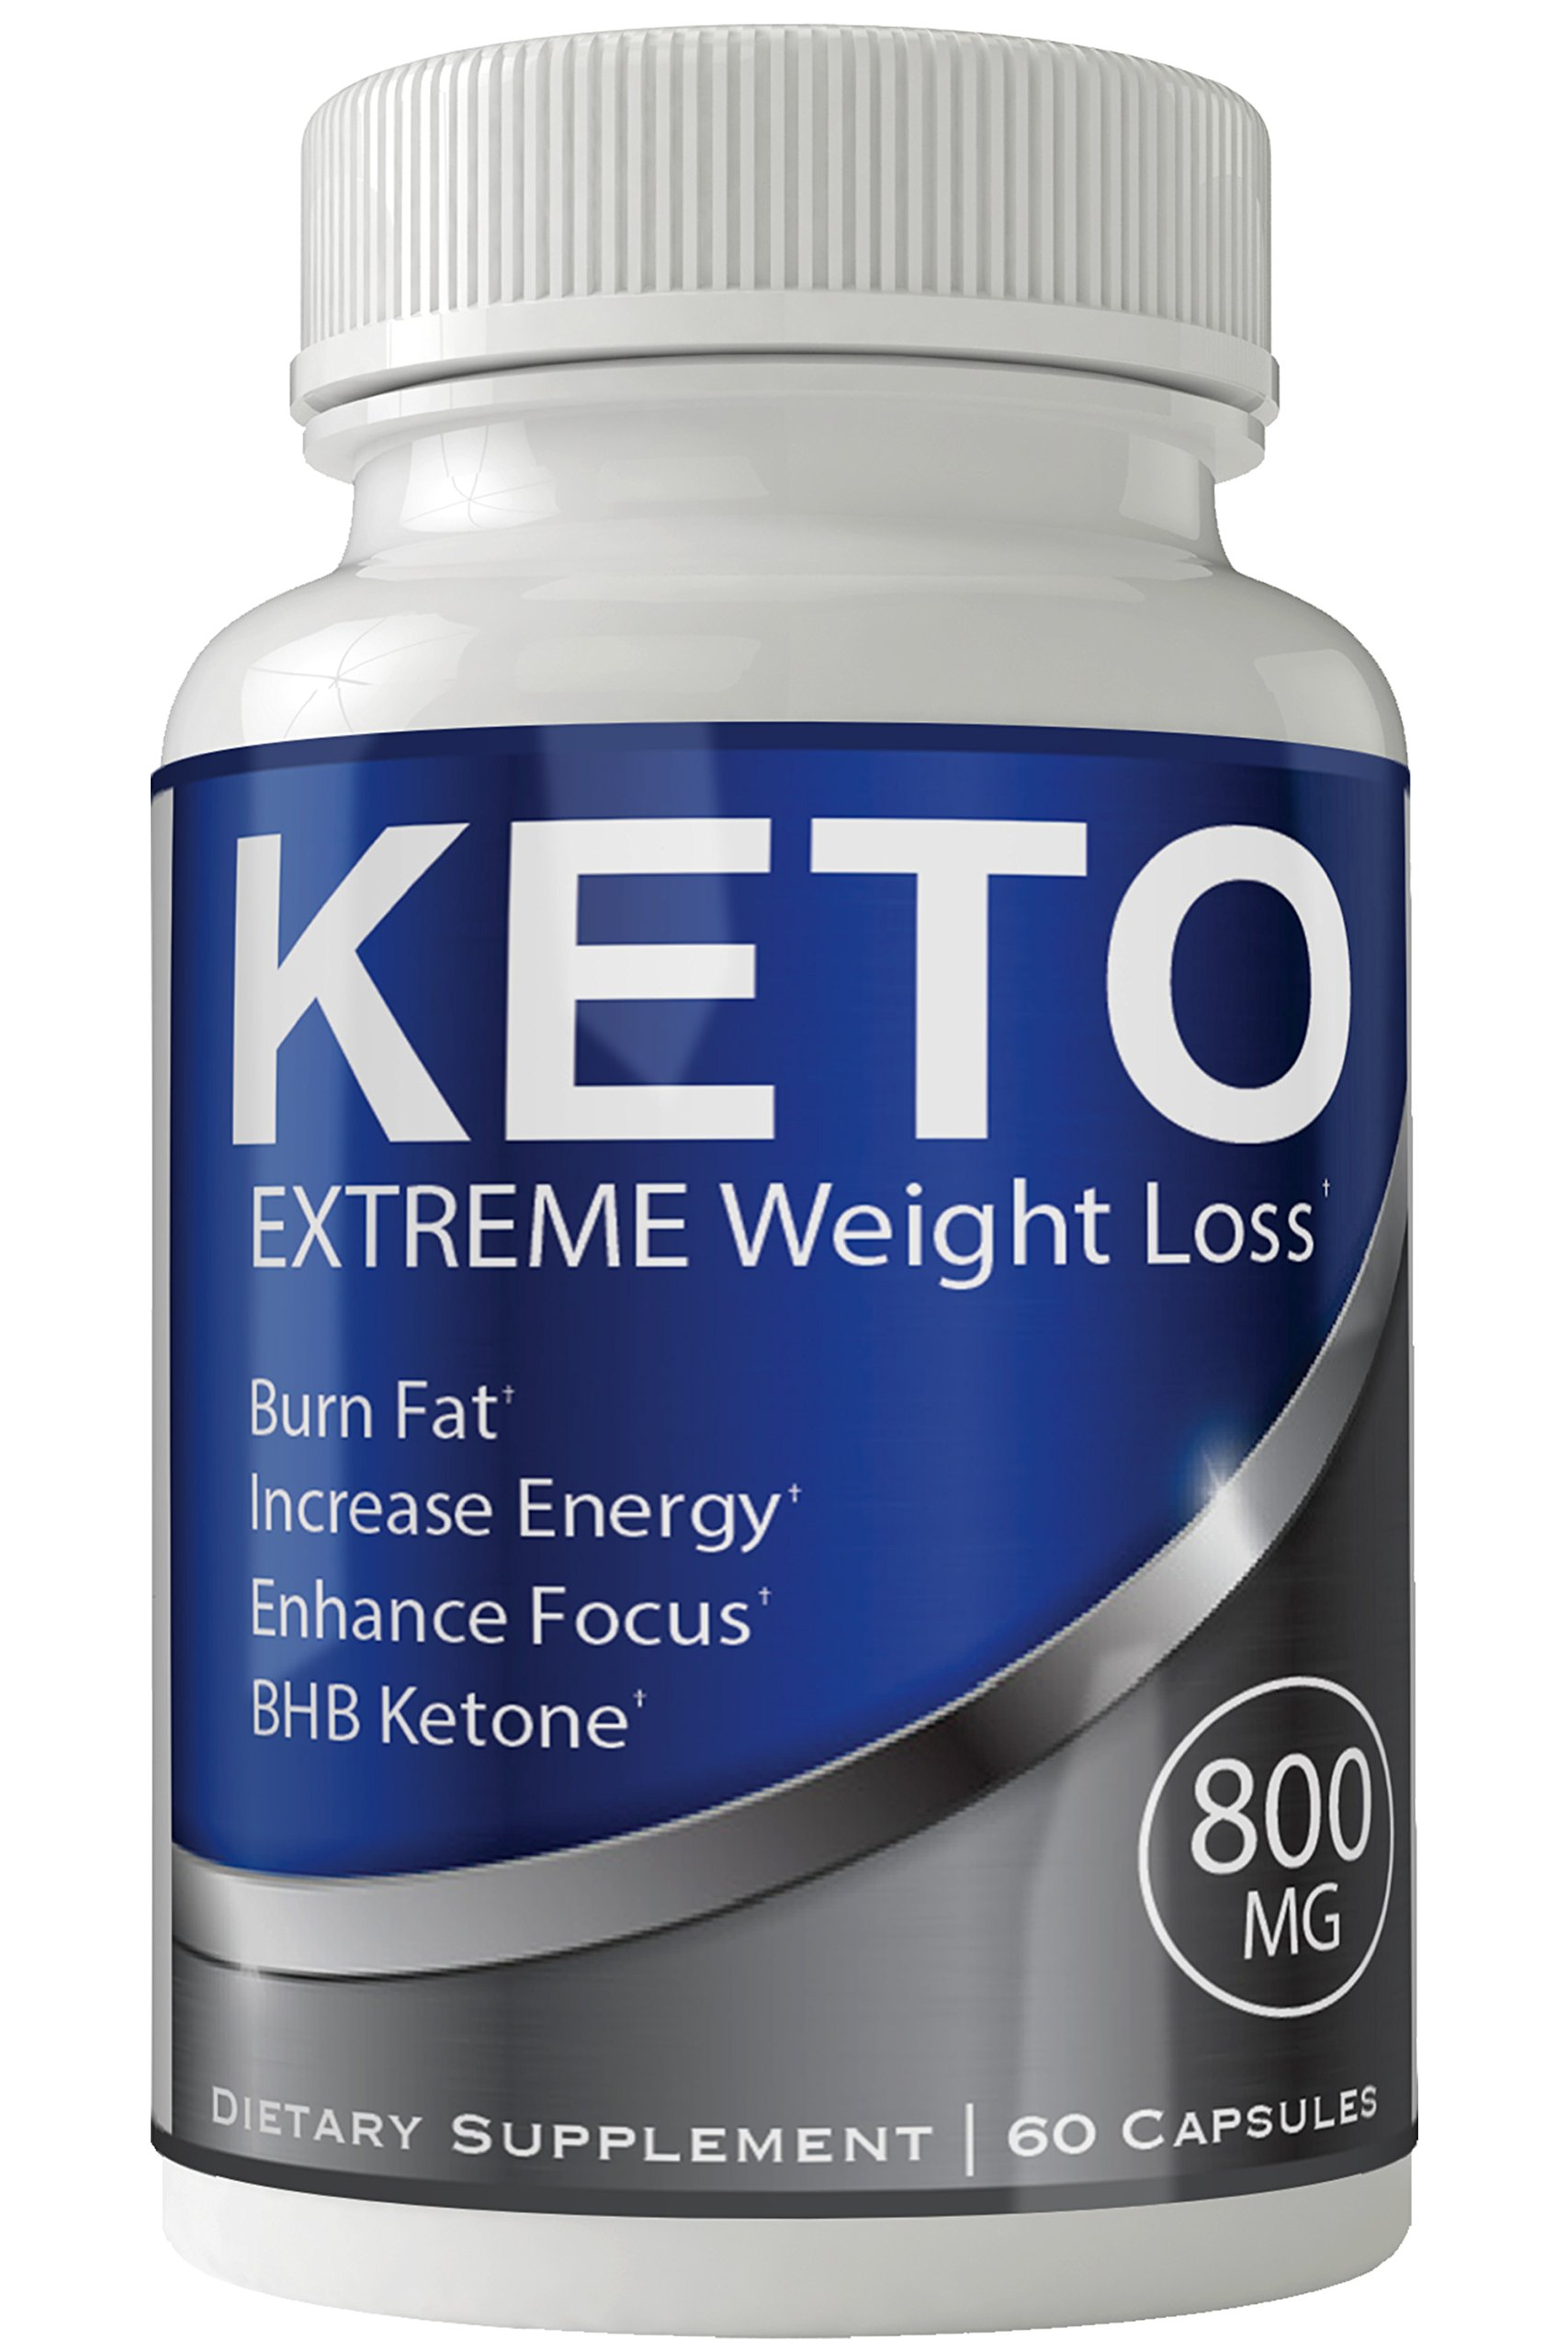 Keto Blast Keto Diet Pills Weight Loss Supplement - Keto Ultimate Diet Pills Trim BHB Salts | Thermogenic Tone Fat Loss Blend Weigh Pills for Women Men Natural Weight Loss Original Boost Your Mojo by nutra4health LLC